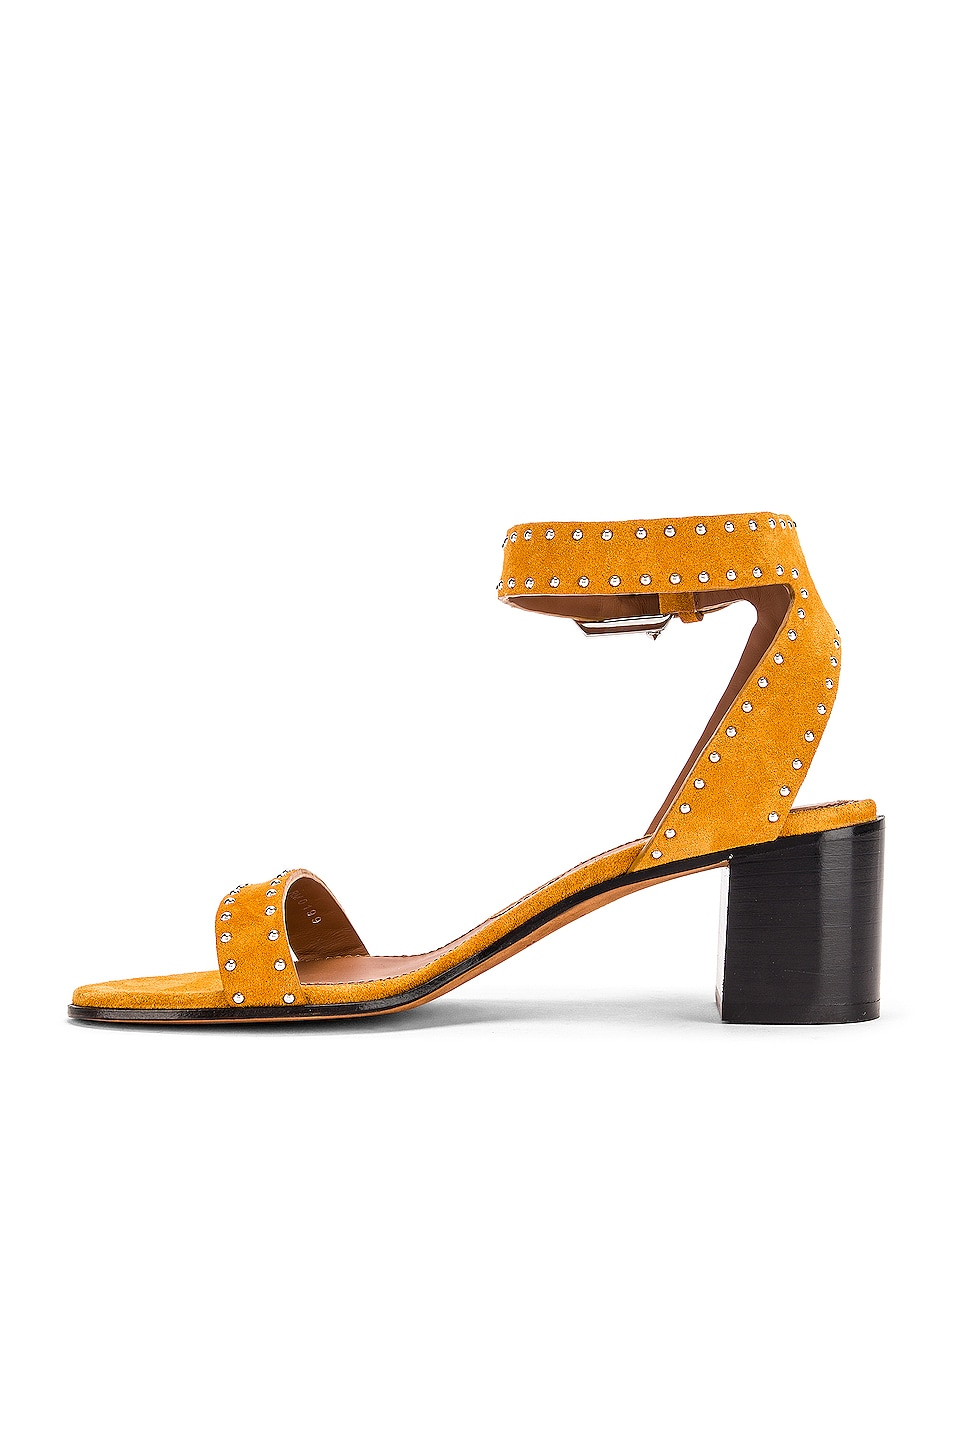 Image 5 of Givenchy Elegant Stud Sandals in Sienna